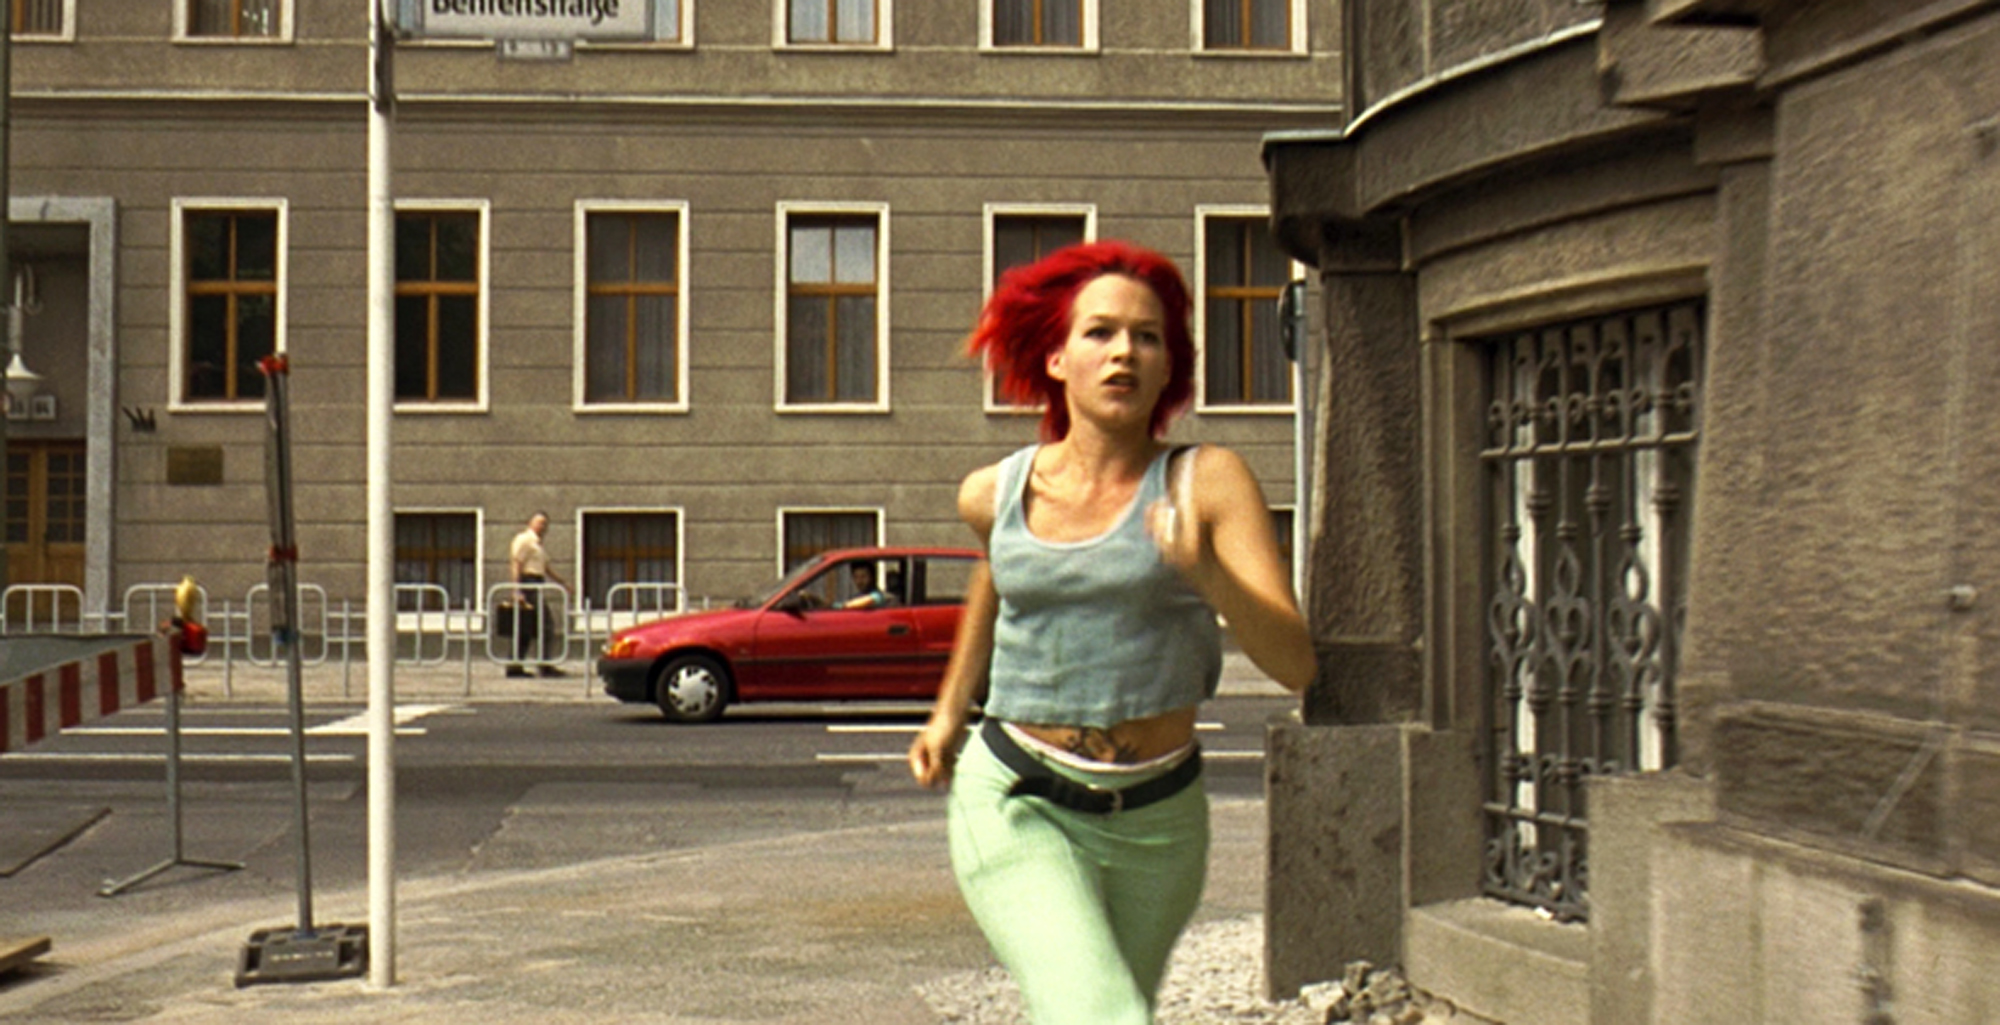 Berlinspiration: Discover Our Top 20 Films Set in Berlin